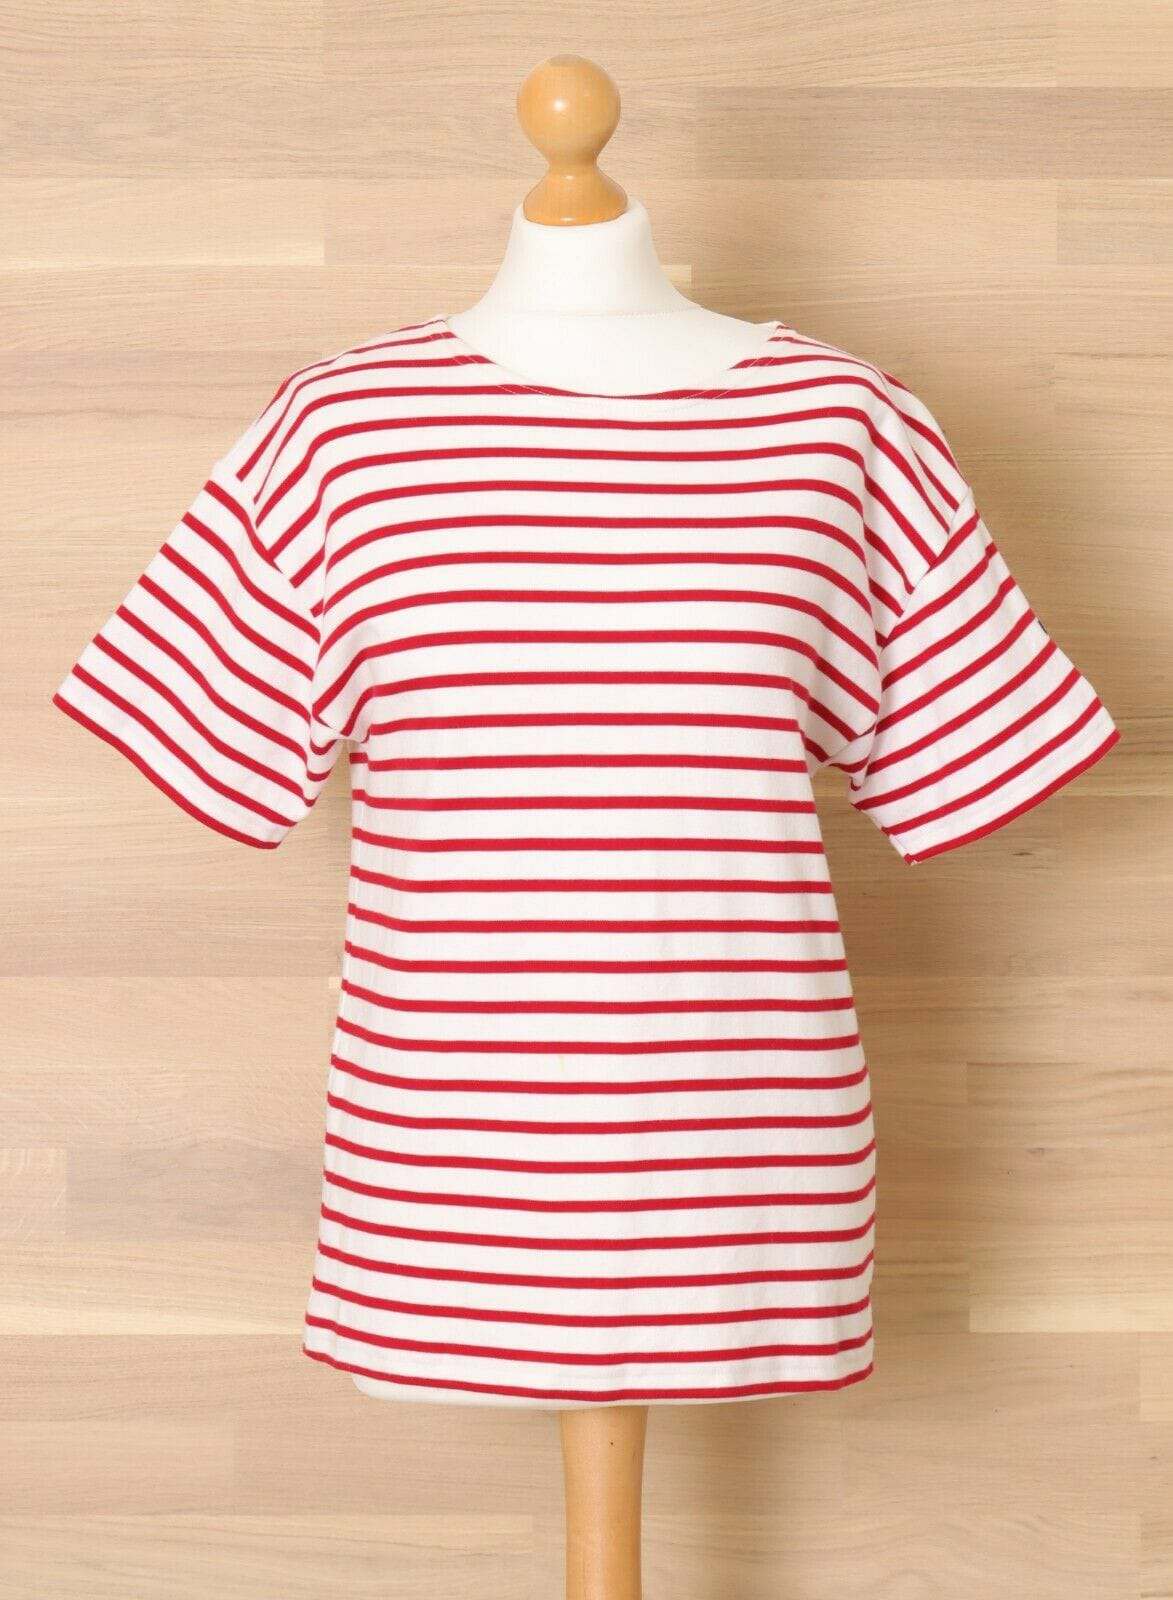 Armorlux Armor-Lux Size 2 S Thick Cotton Breton Short Sleeve Striped T Shirt